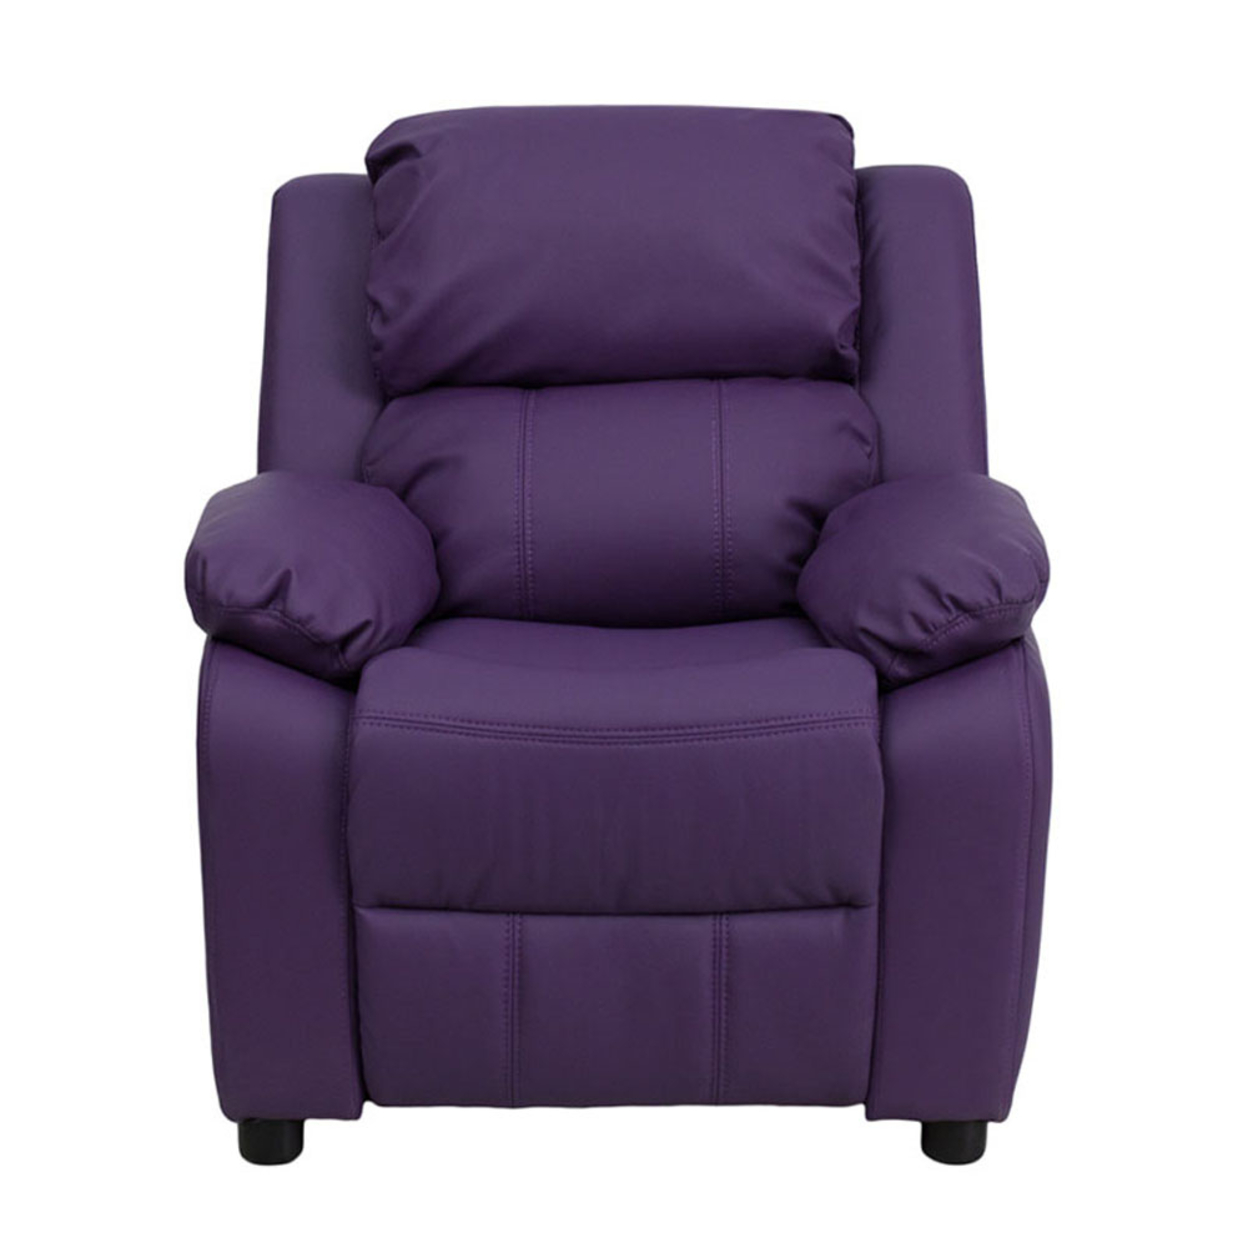 Flash Furniture Deluxe Heavily Padded Contemporary Purple Vinyl Kids Recliner with Storage Arms [863-Bt-7985-Kid-Pur-Gg] 59e46013e2246142ce45d075